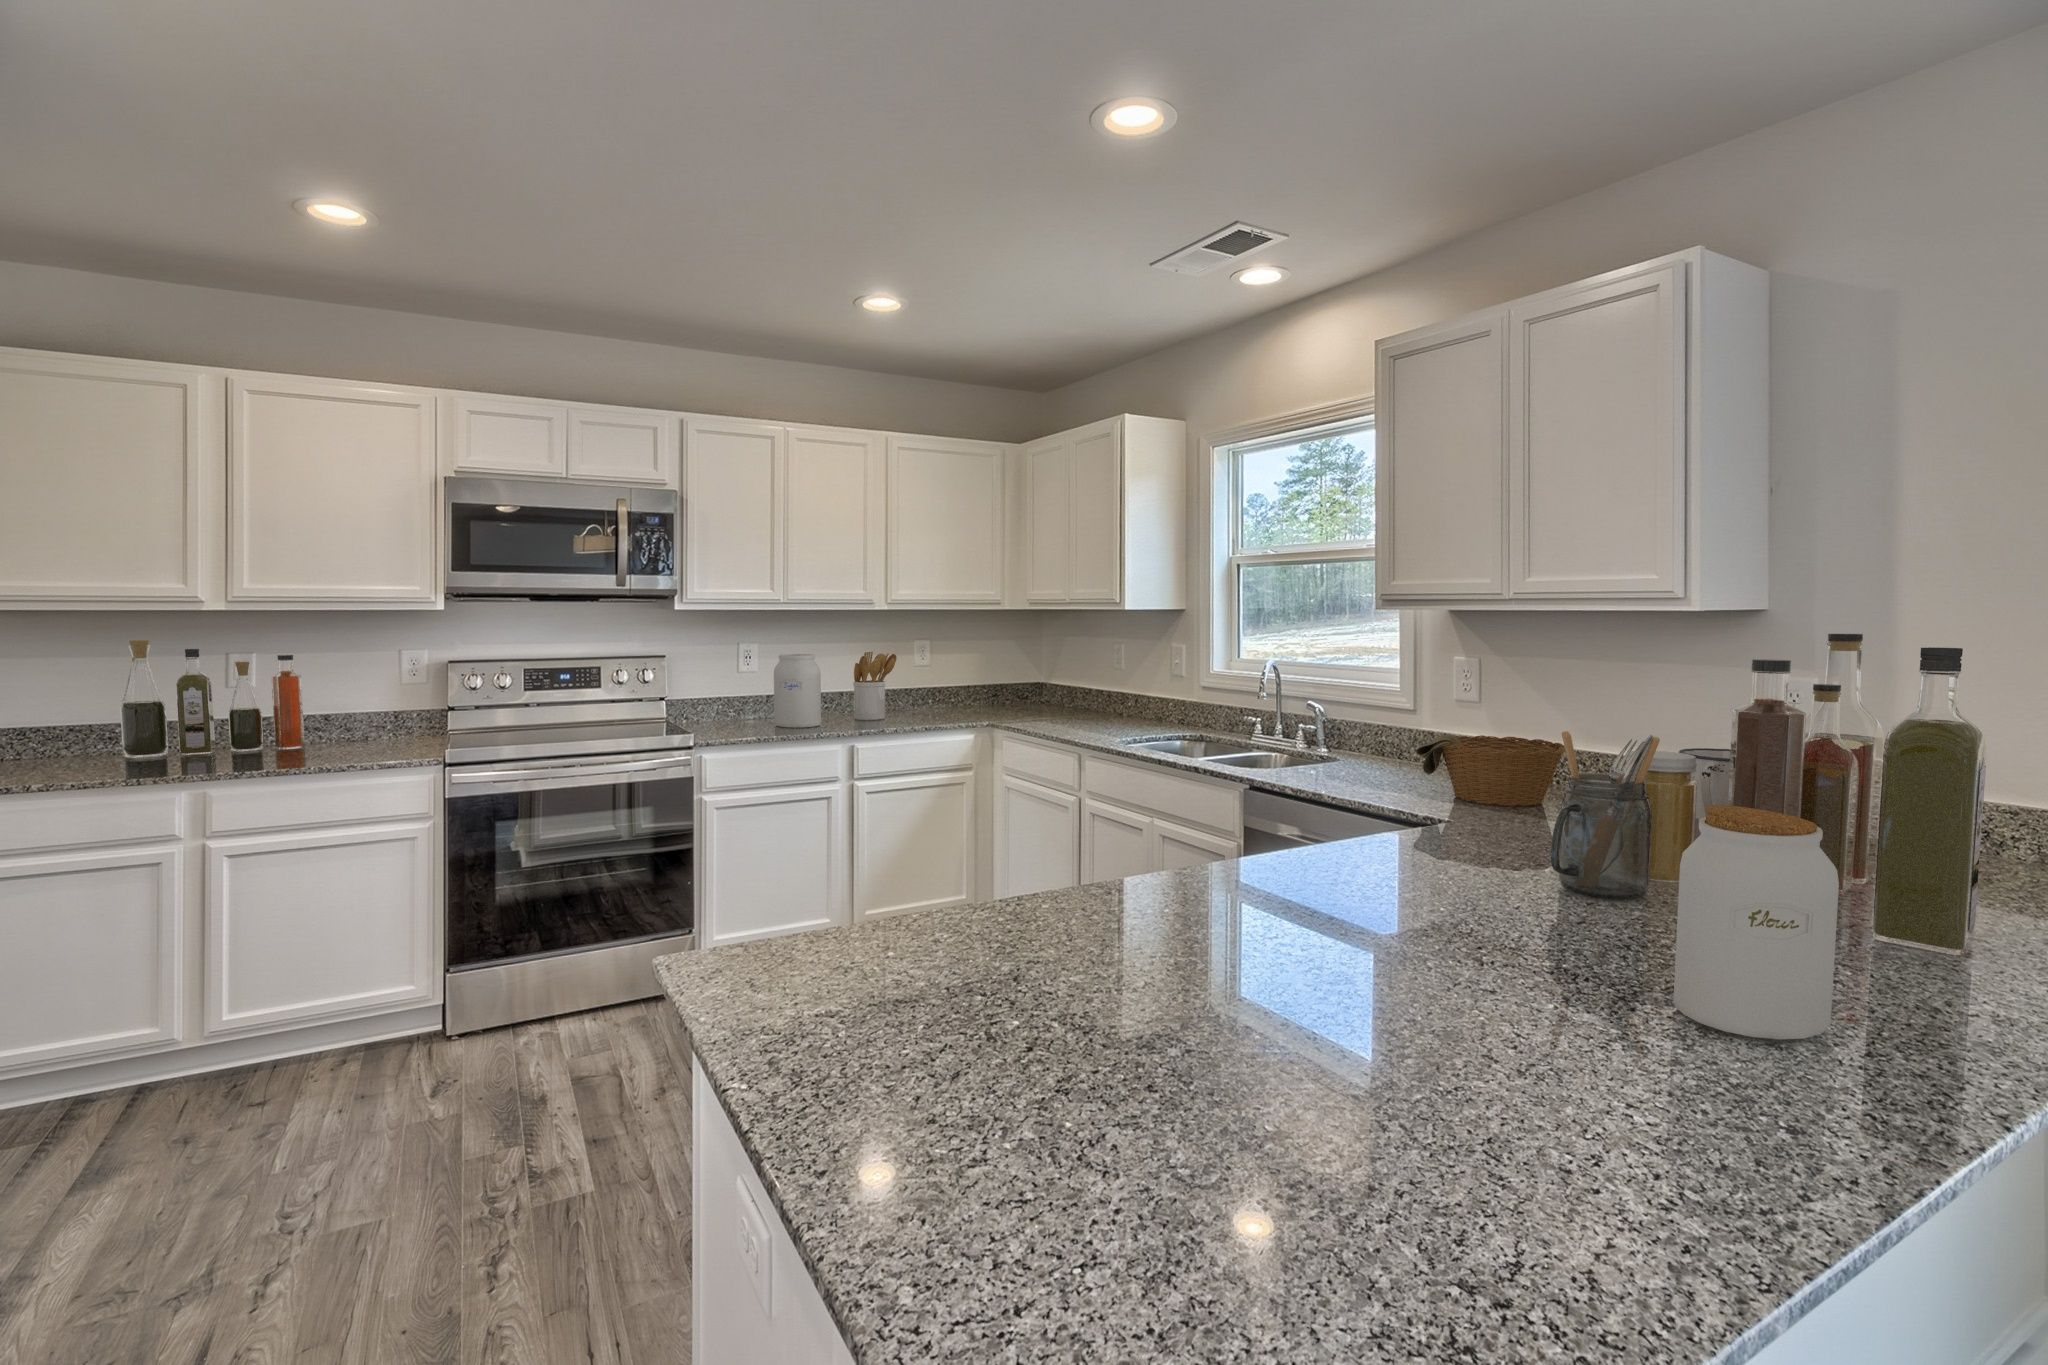 Kitchen featured in the Langton By Stanley Martin Homes in Columbia, SC